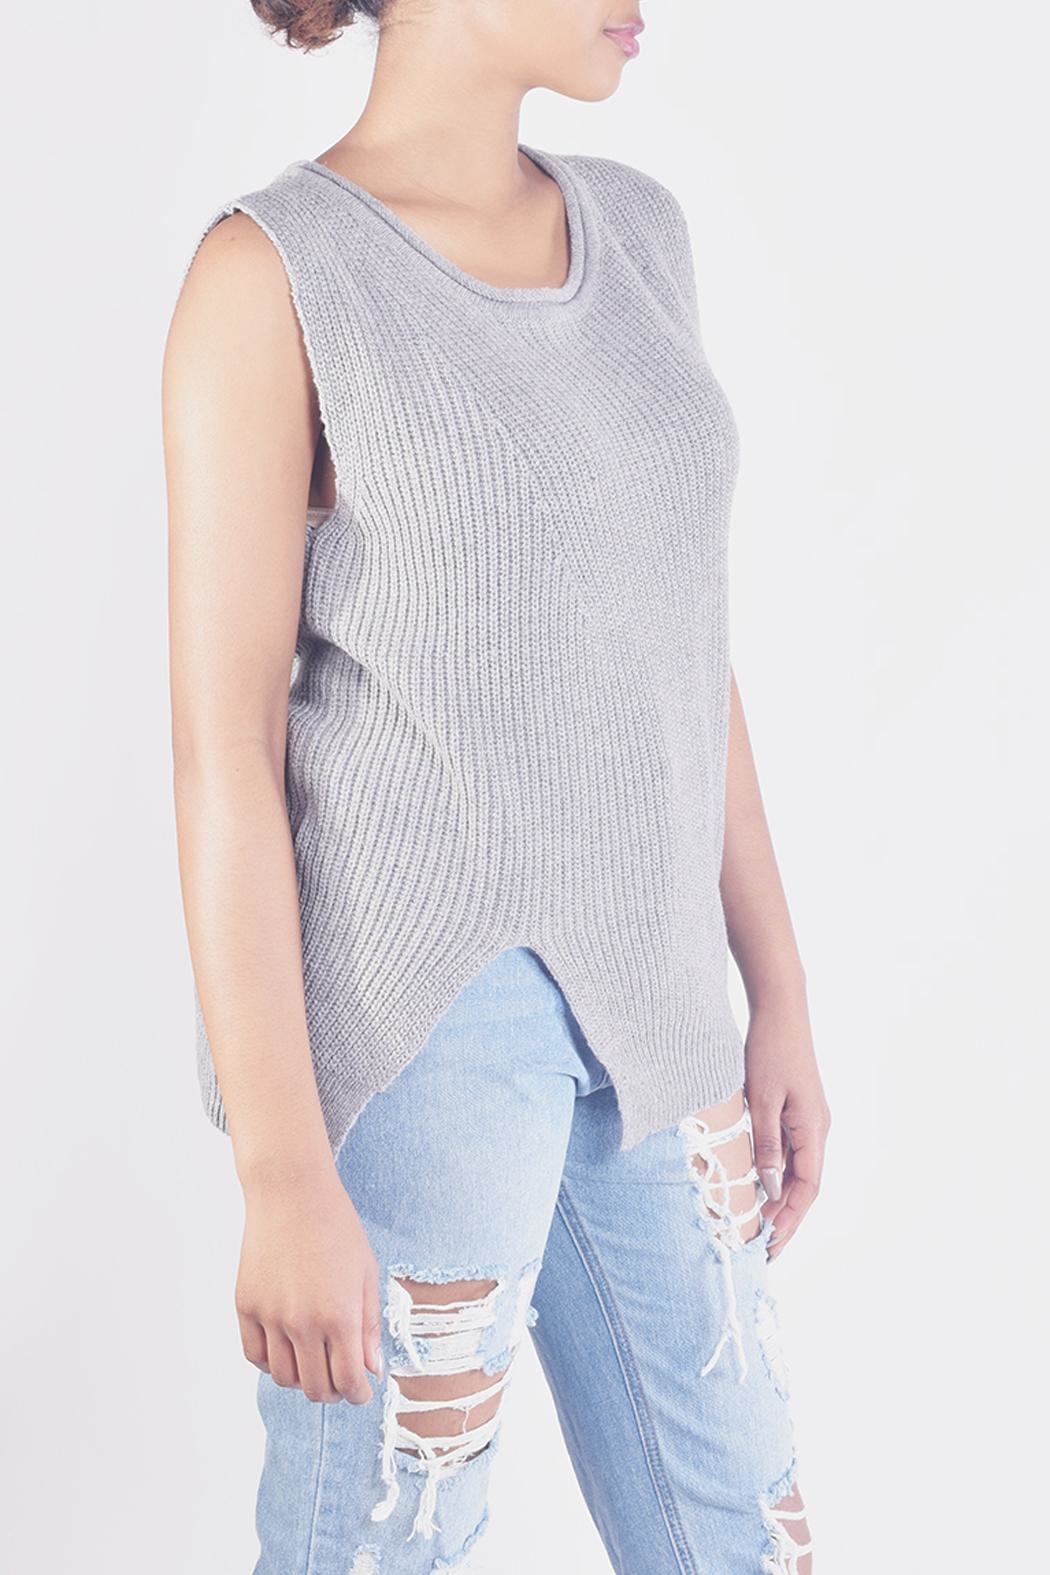 Ellison Chic Sleevless Knit-Top - Front Full Image